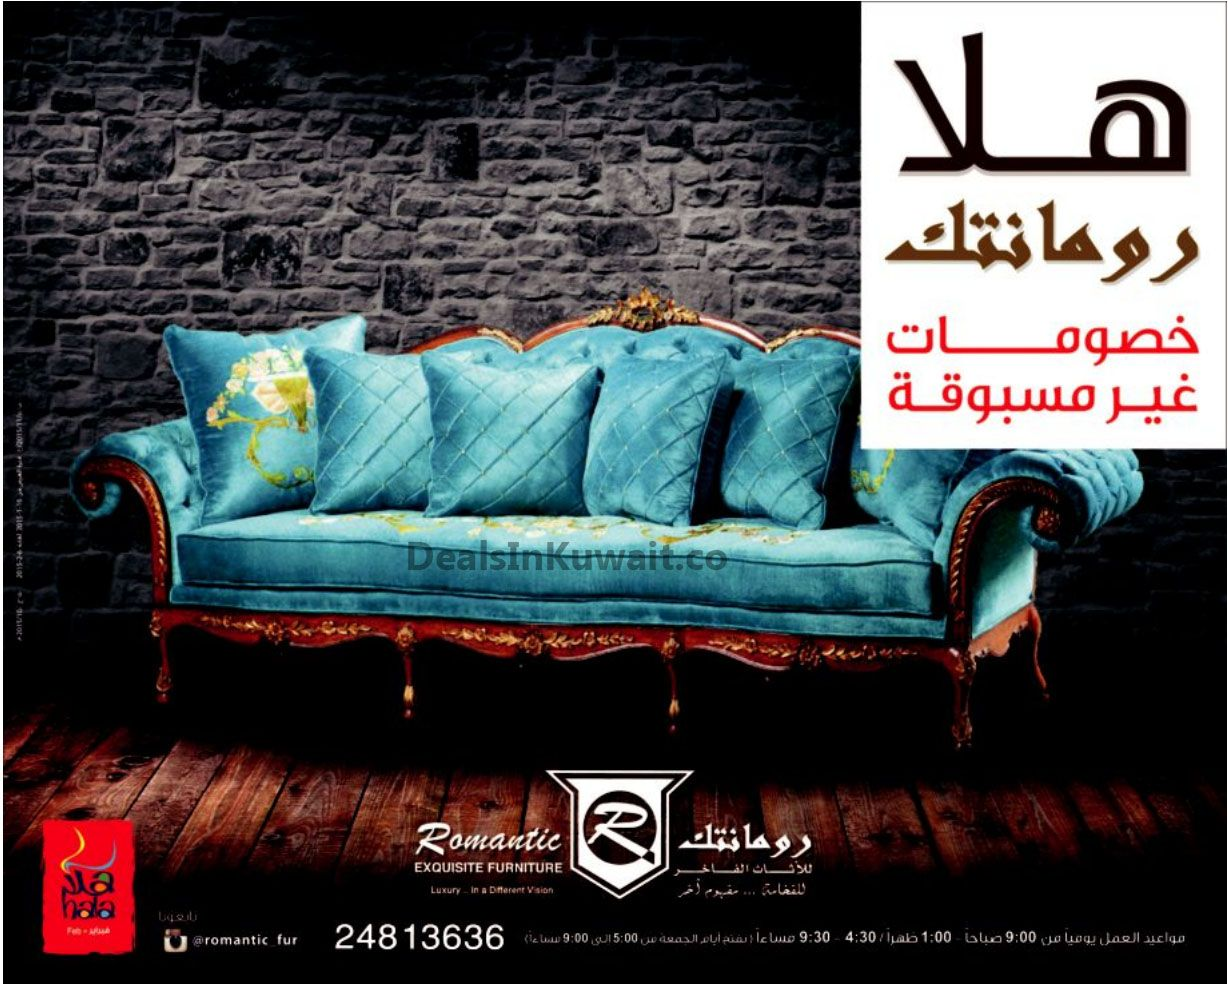 Romantic Furniture Kuwait – Special Offers – 20 January 2015   Deals in Kuwait